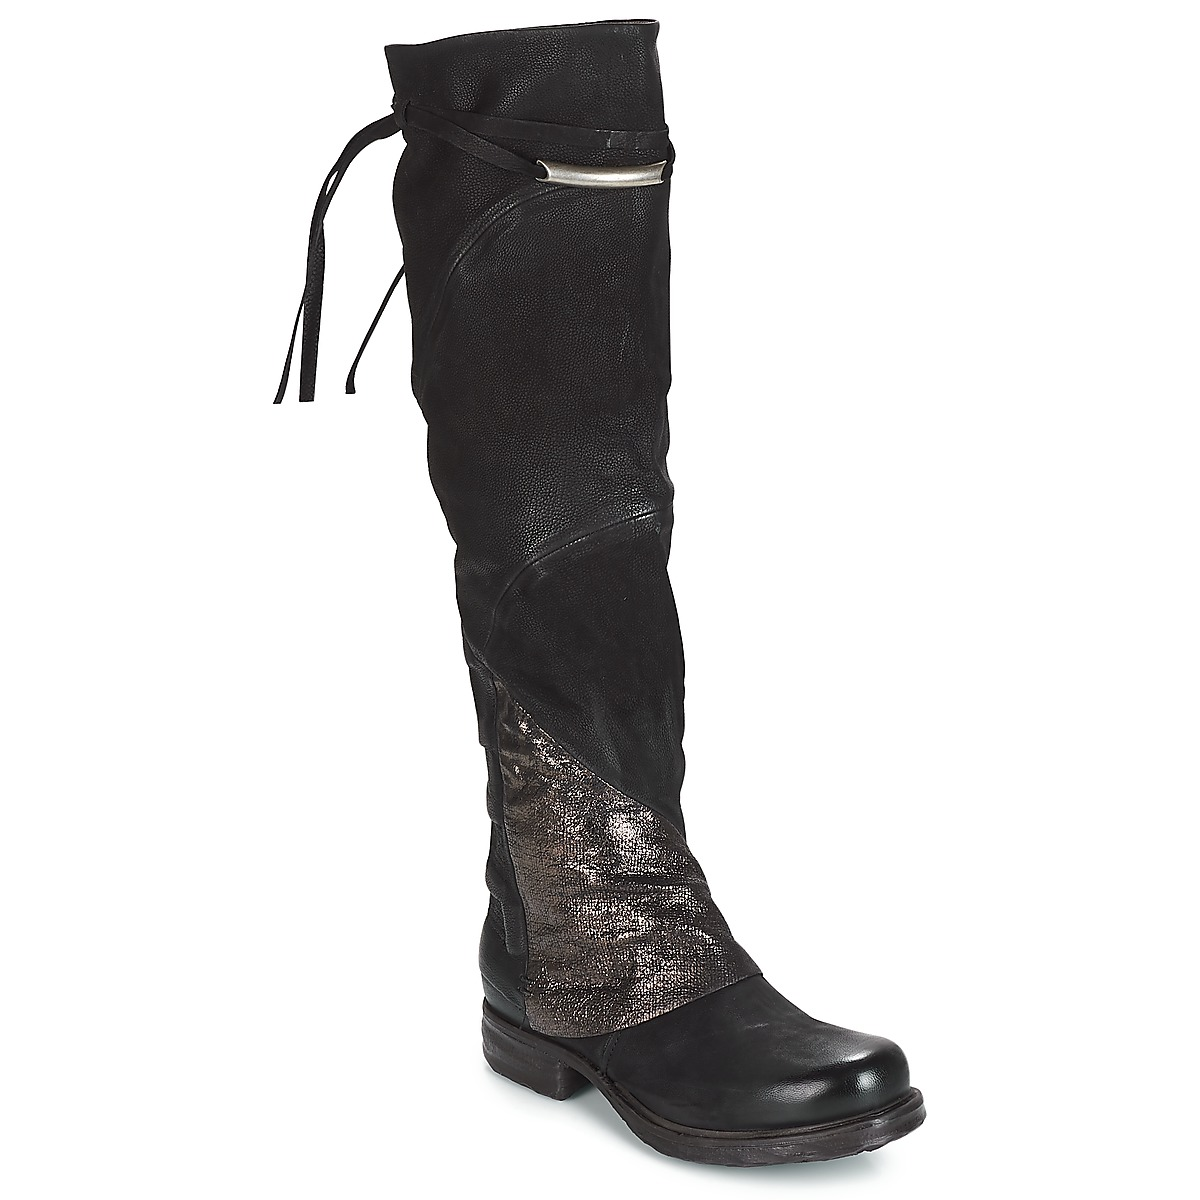 airstep / a.s.98  saint ec patch  women's high boots in black